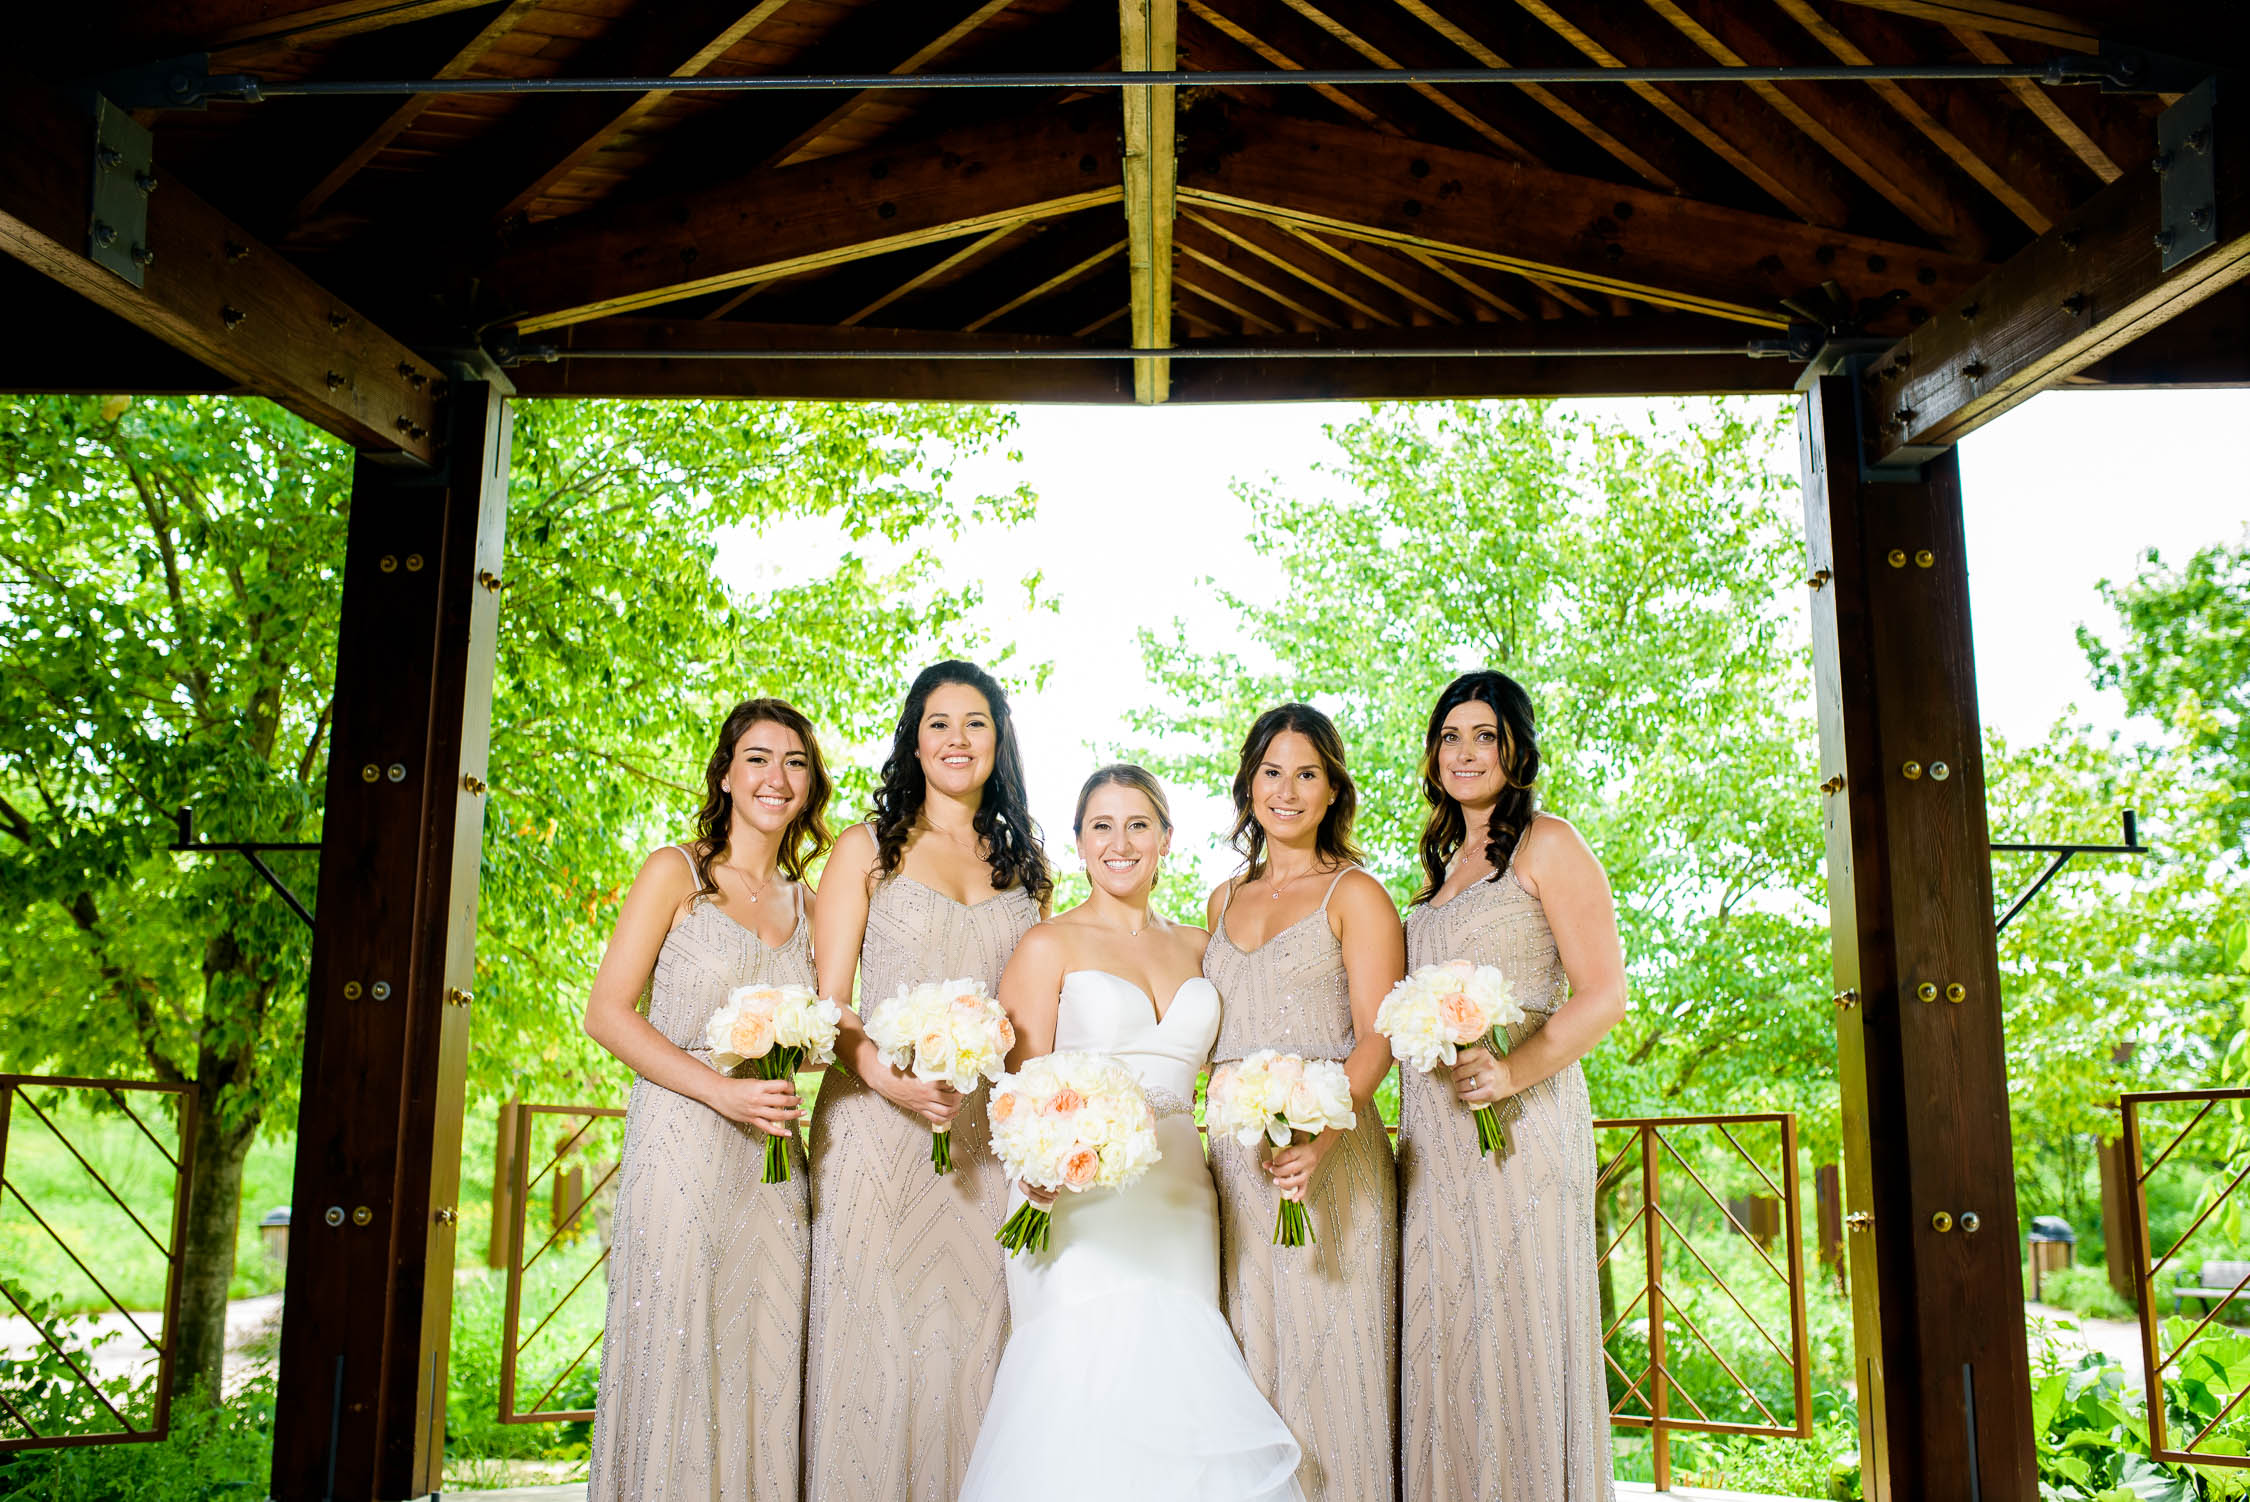 Bridesmaids before a wedding at Independence Grove in Libertyville.